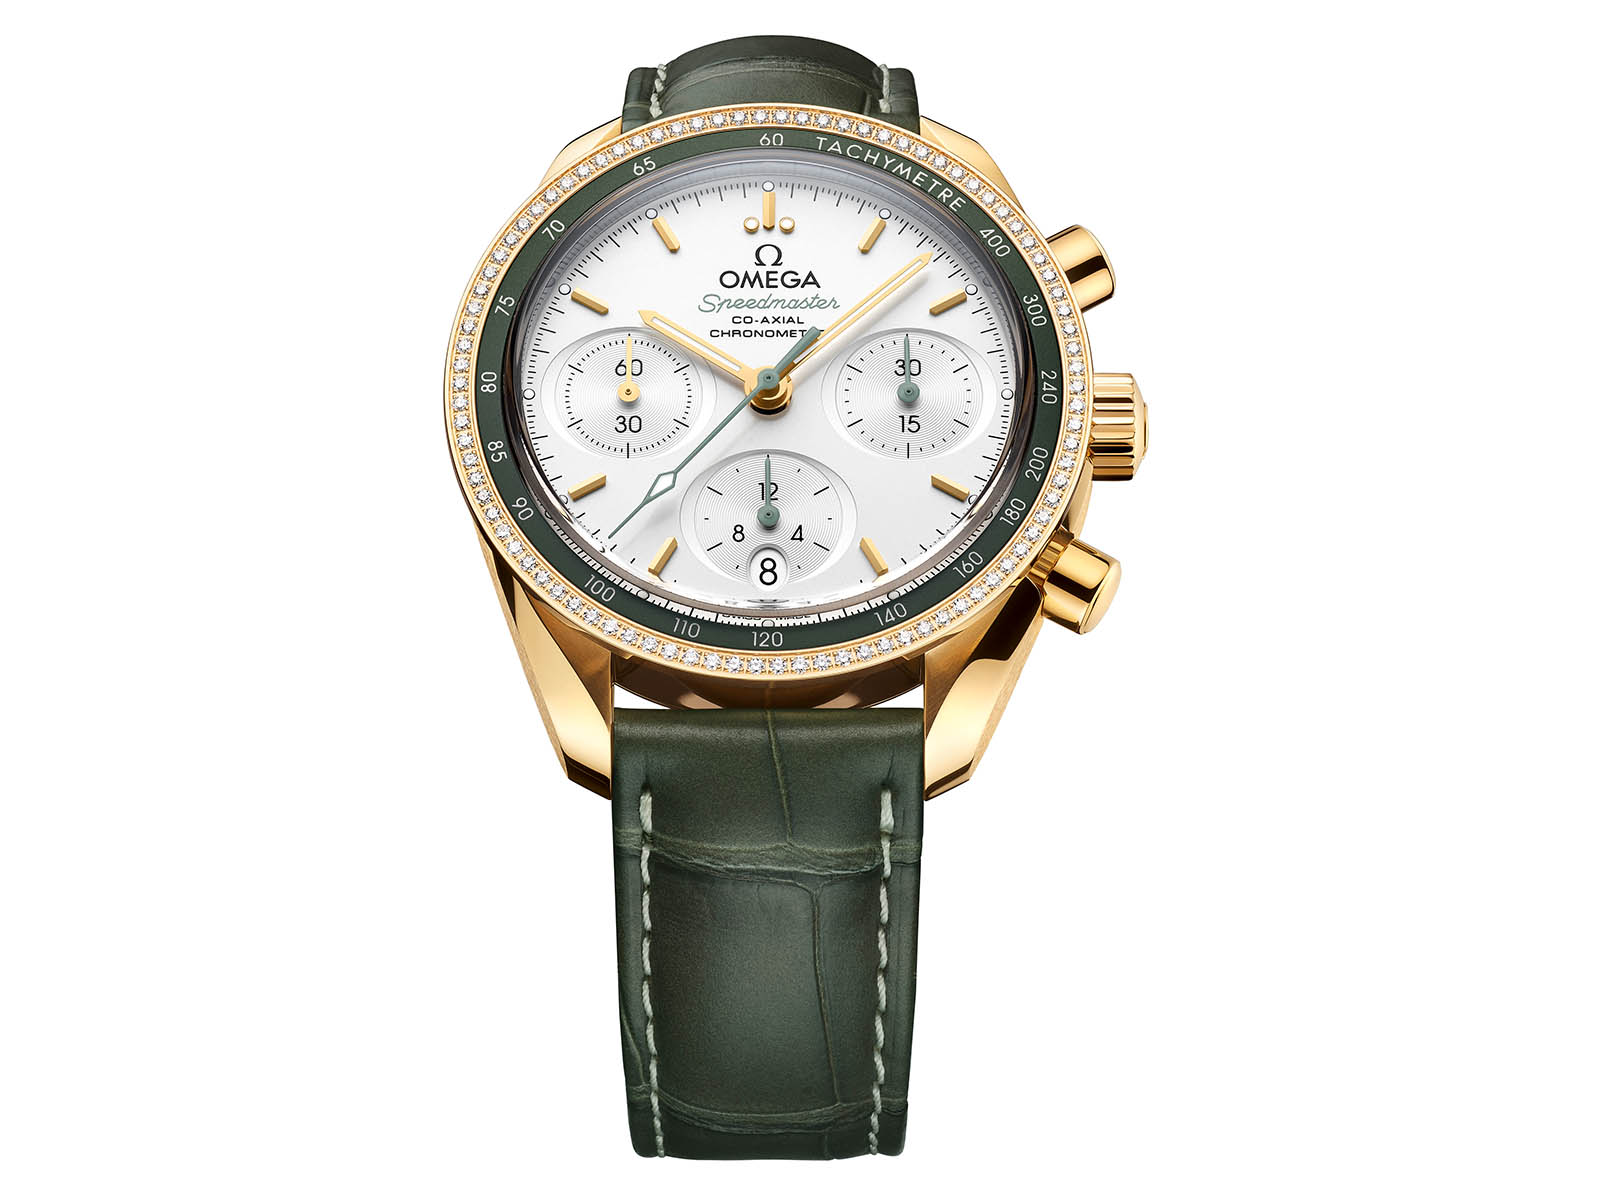 324-68-38-50-02-004-omega-speedmaster-38-co-axial-chronograph-38mm-yellow-gold-diamond-3.jpg